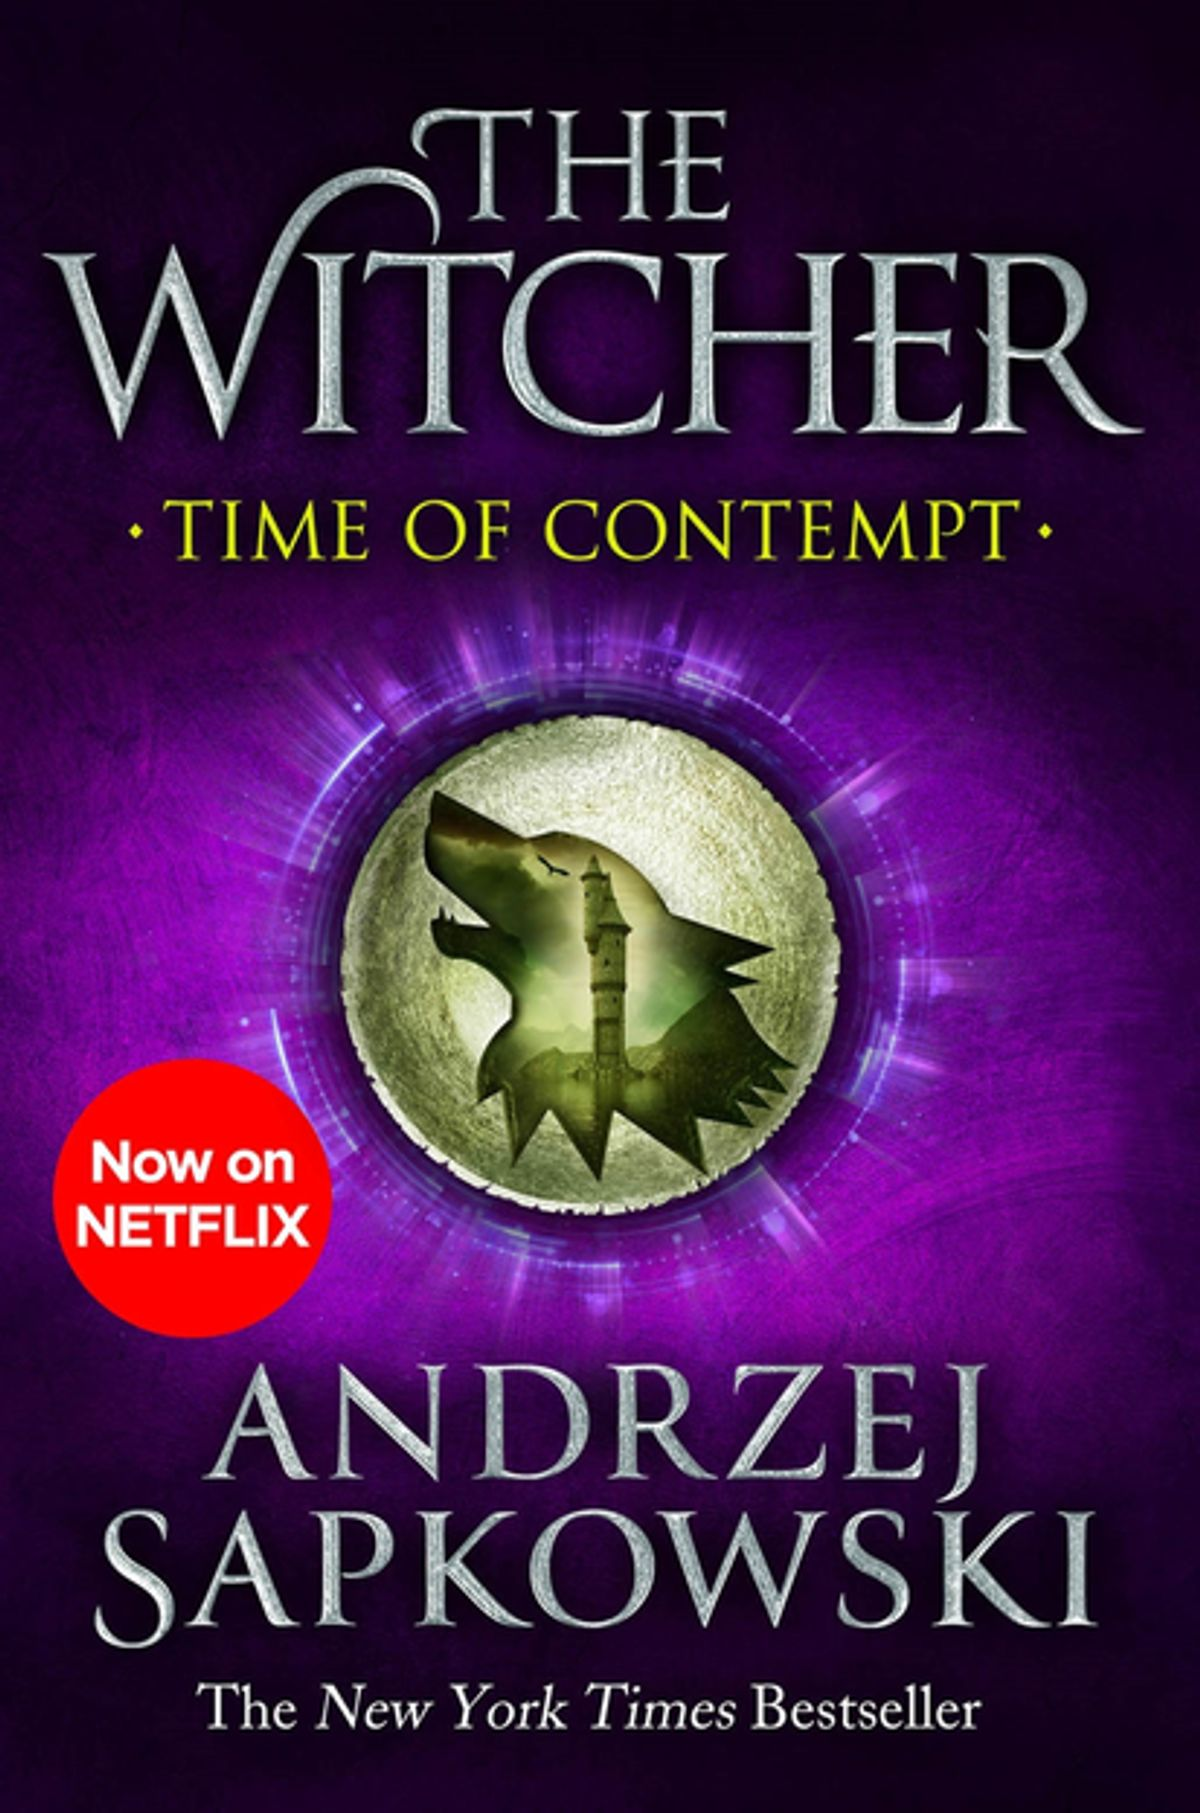 Time of Contempt cover - The Witcher by Andrzej Sapkowski